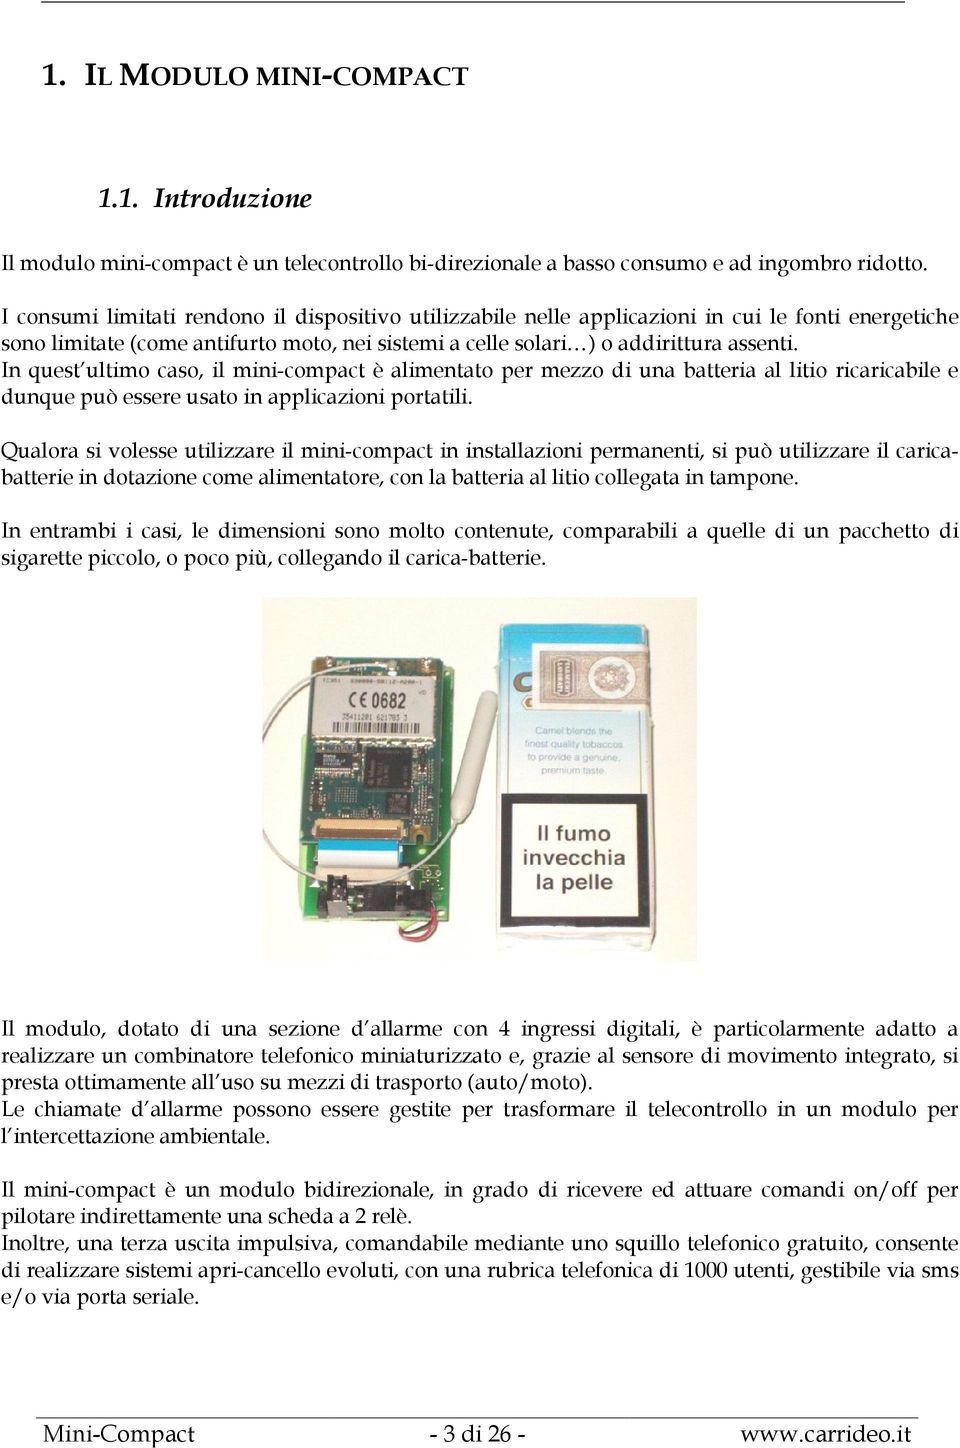 Telecontrollo mini compact descrizione e modalit d uso pdf for Combinatore telefonico auto